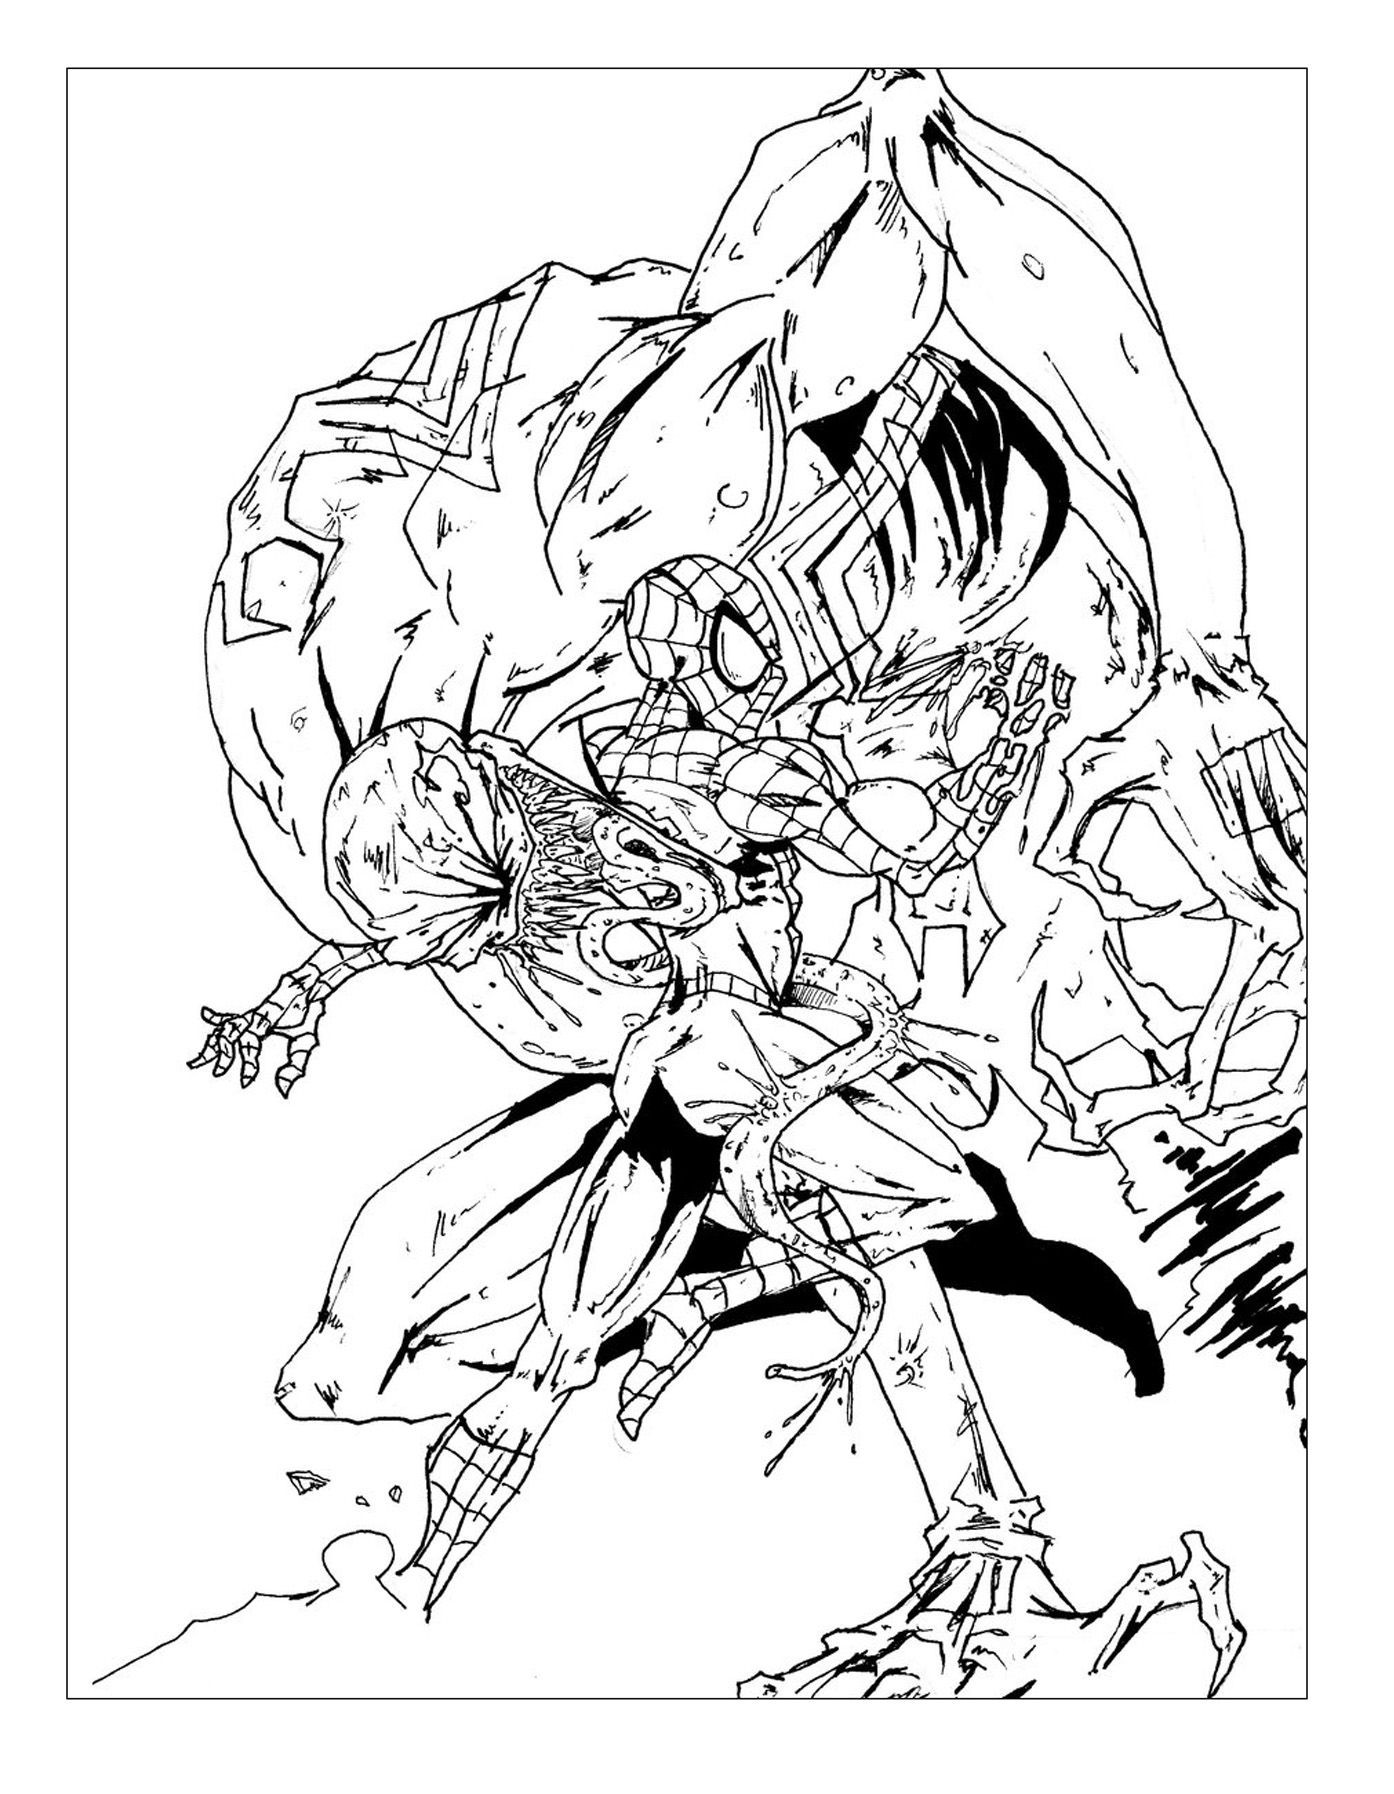 Spiderman fighting against his nemesis, Venom From the gallery ...